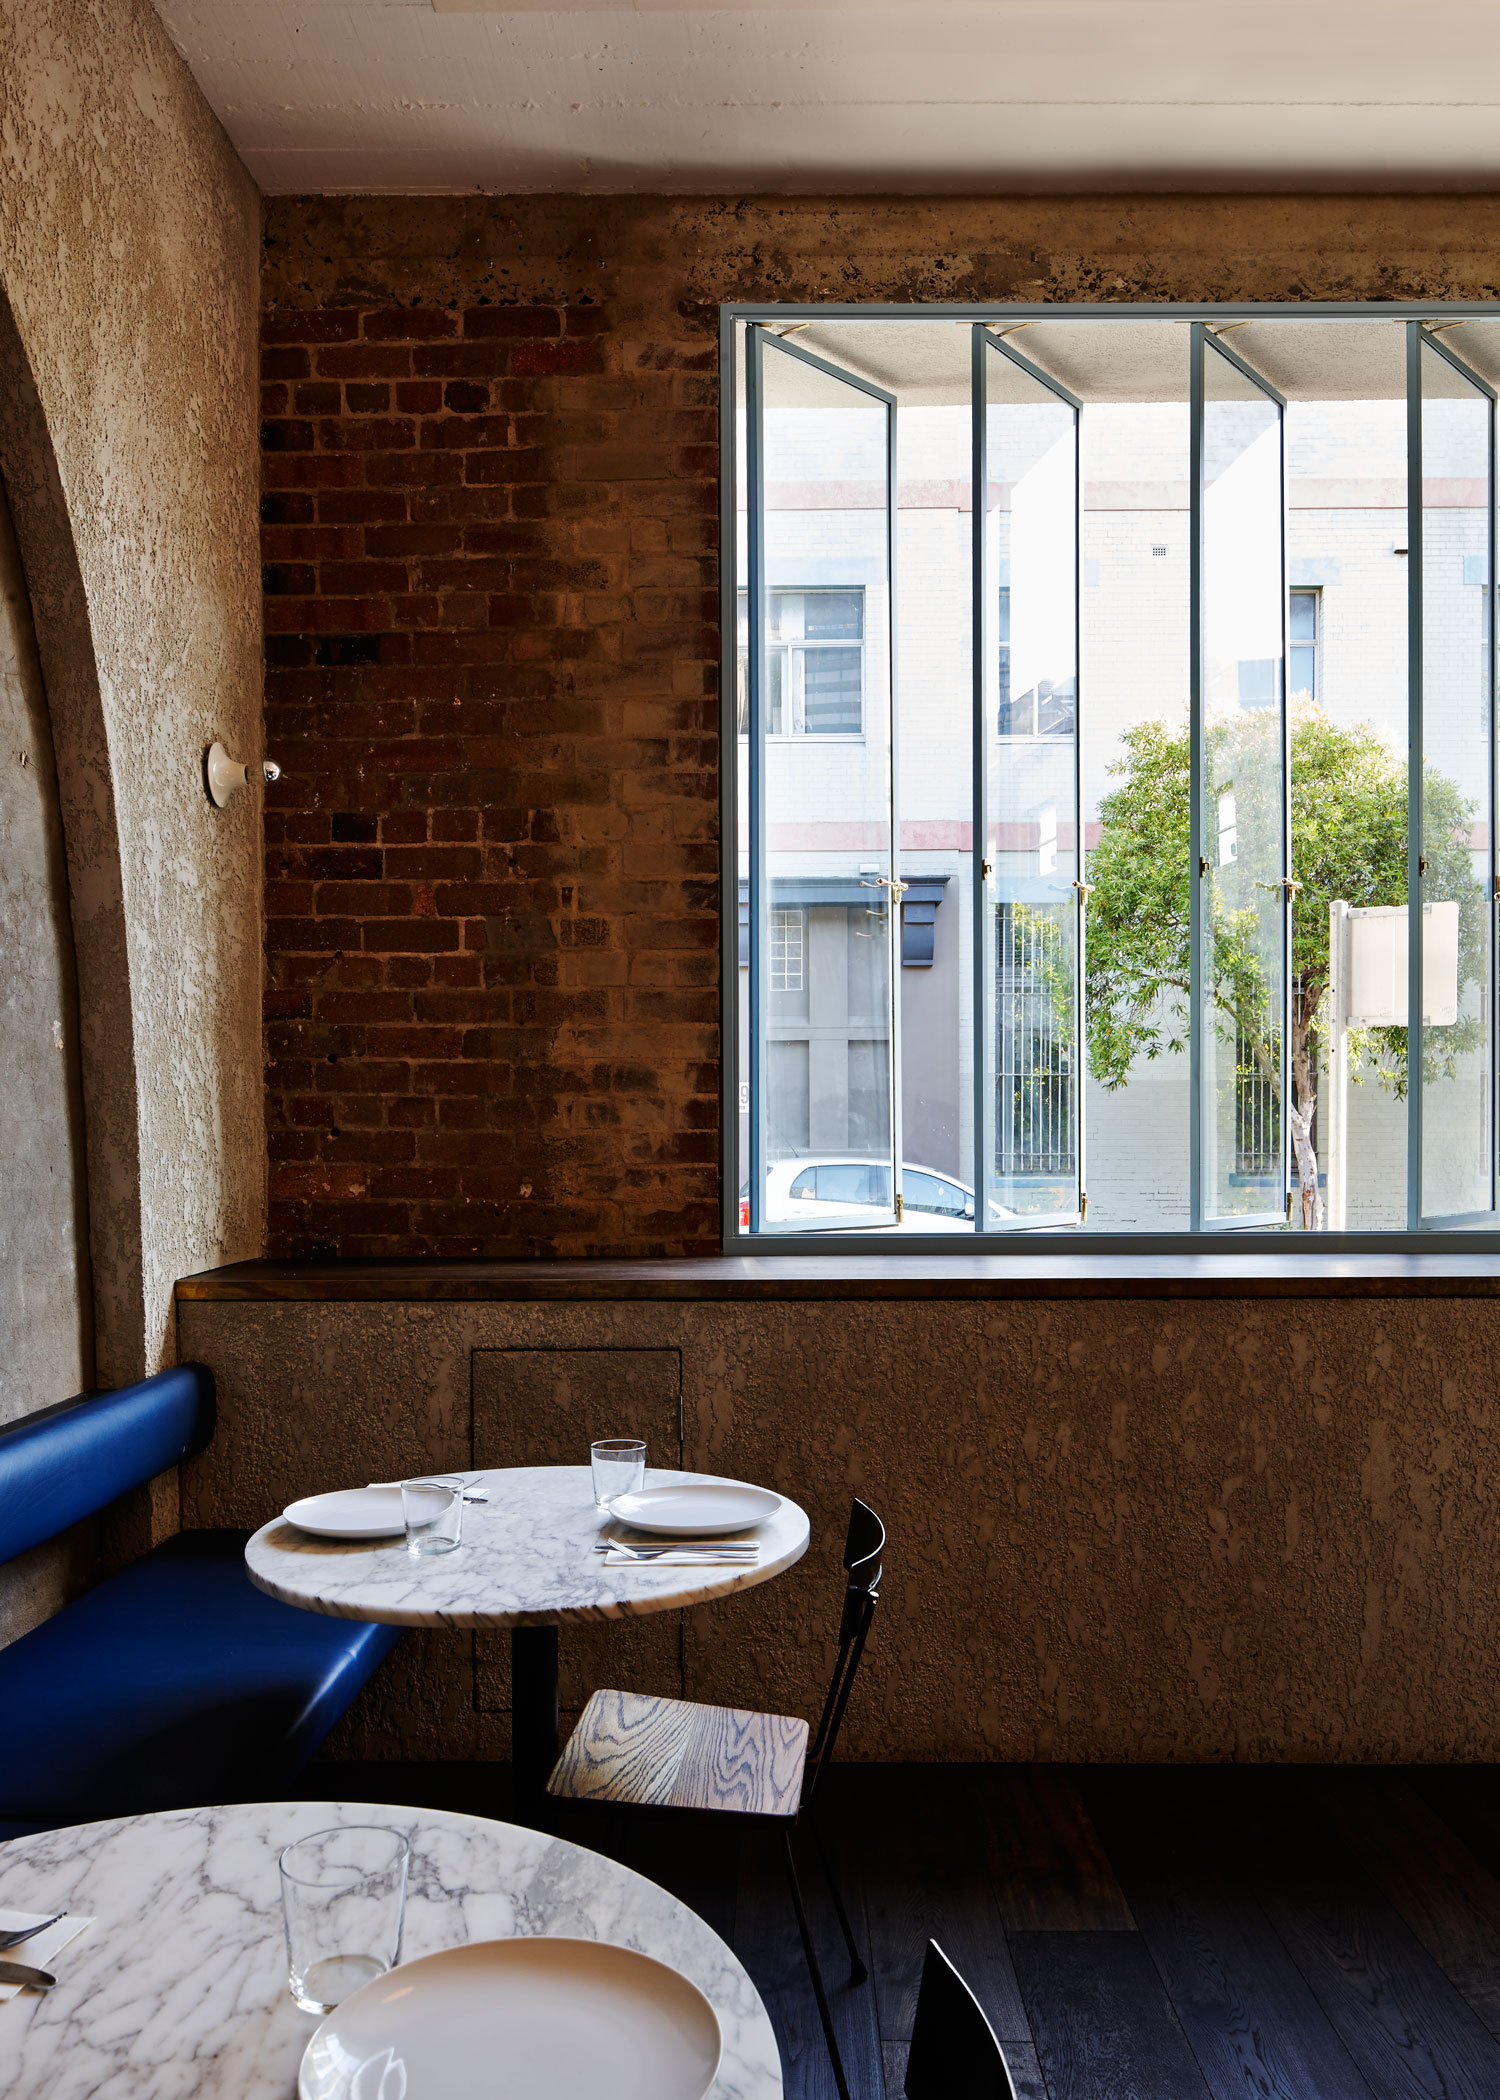 Sealed Grow Room Design: Ester Restaurant & Bar By Anthony Gill Architects